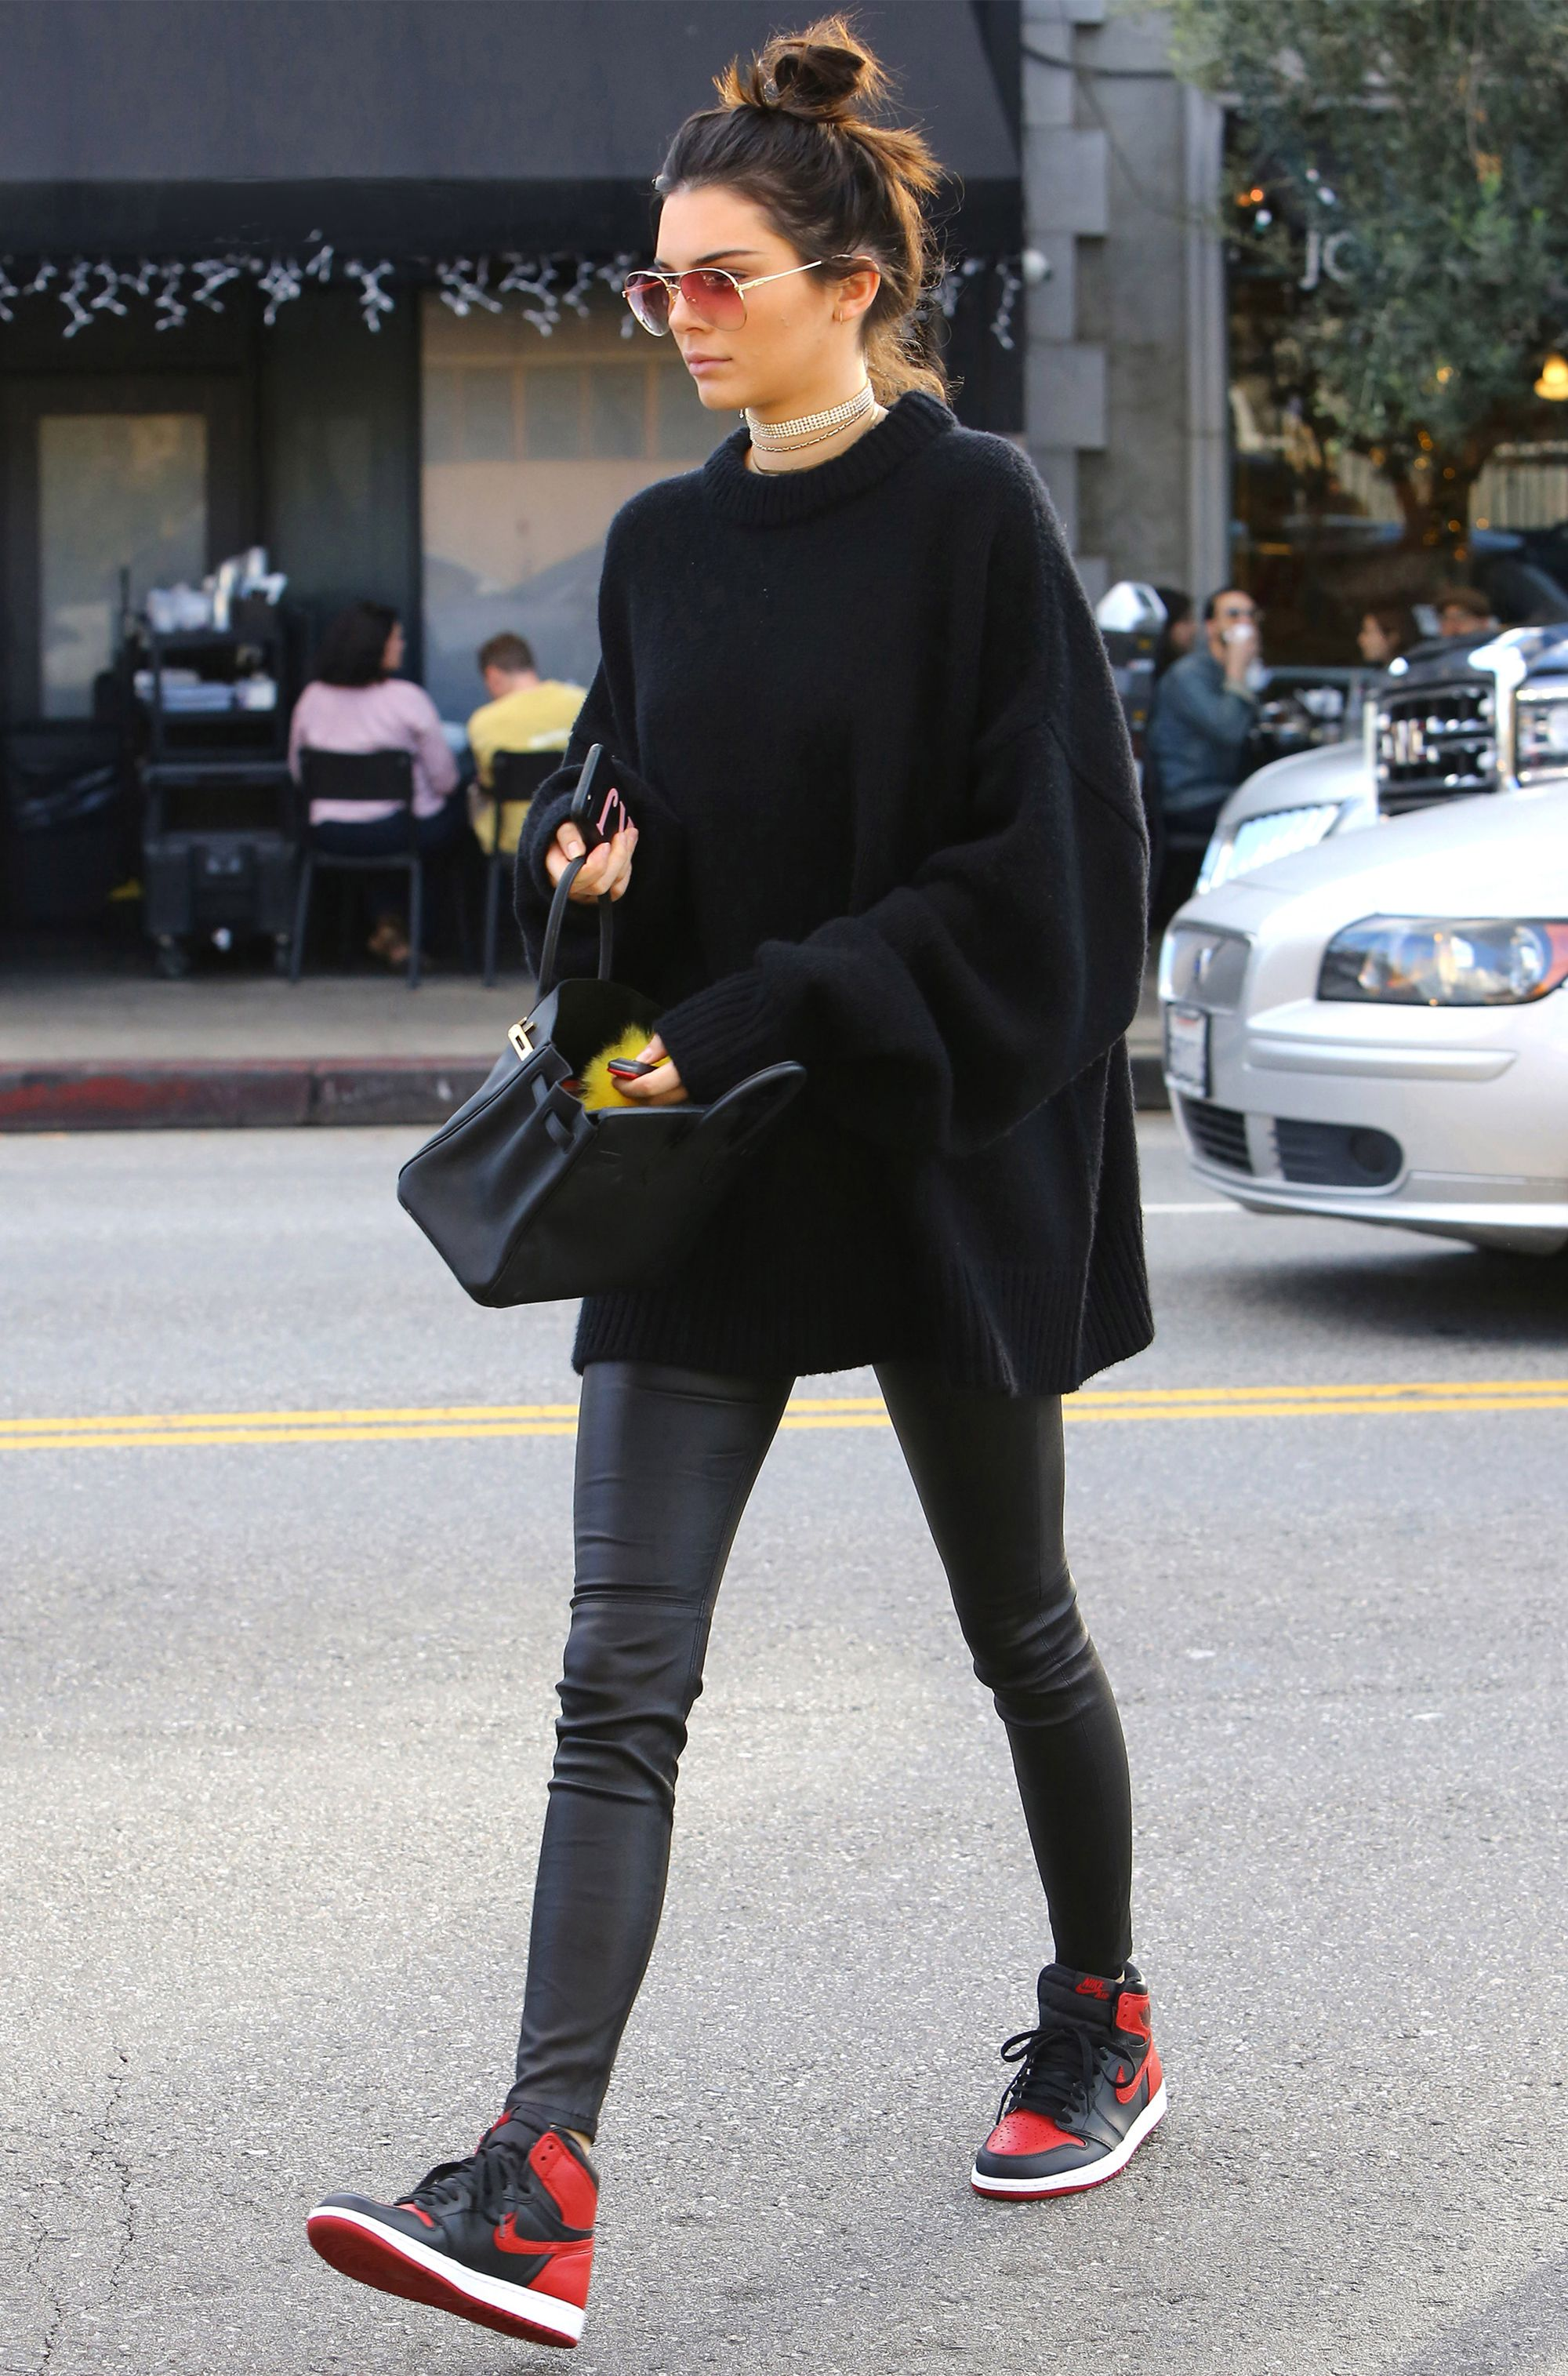 Fashion Inspirationcollege street style roundup october